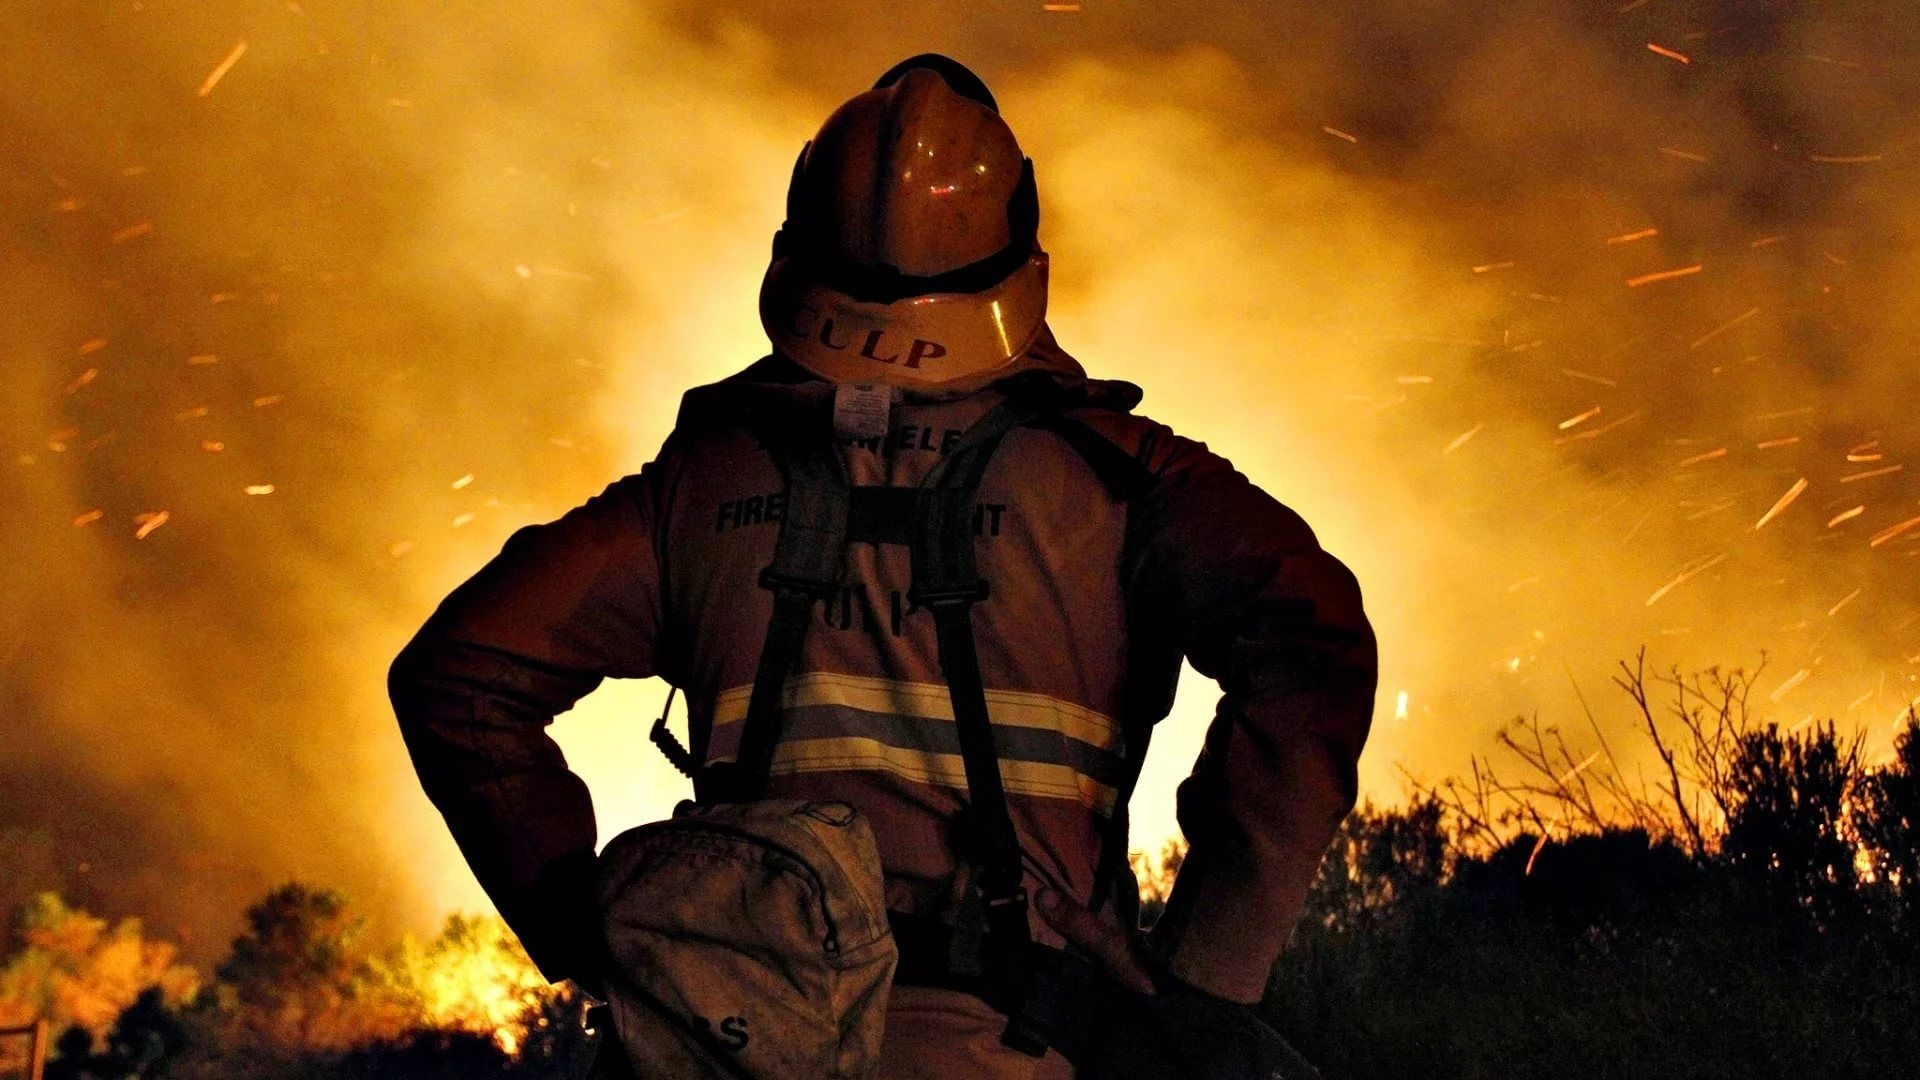 Firefighter Free Wallpaper and Background